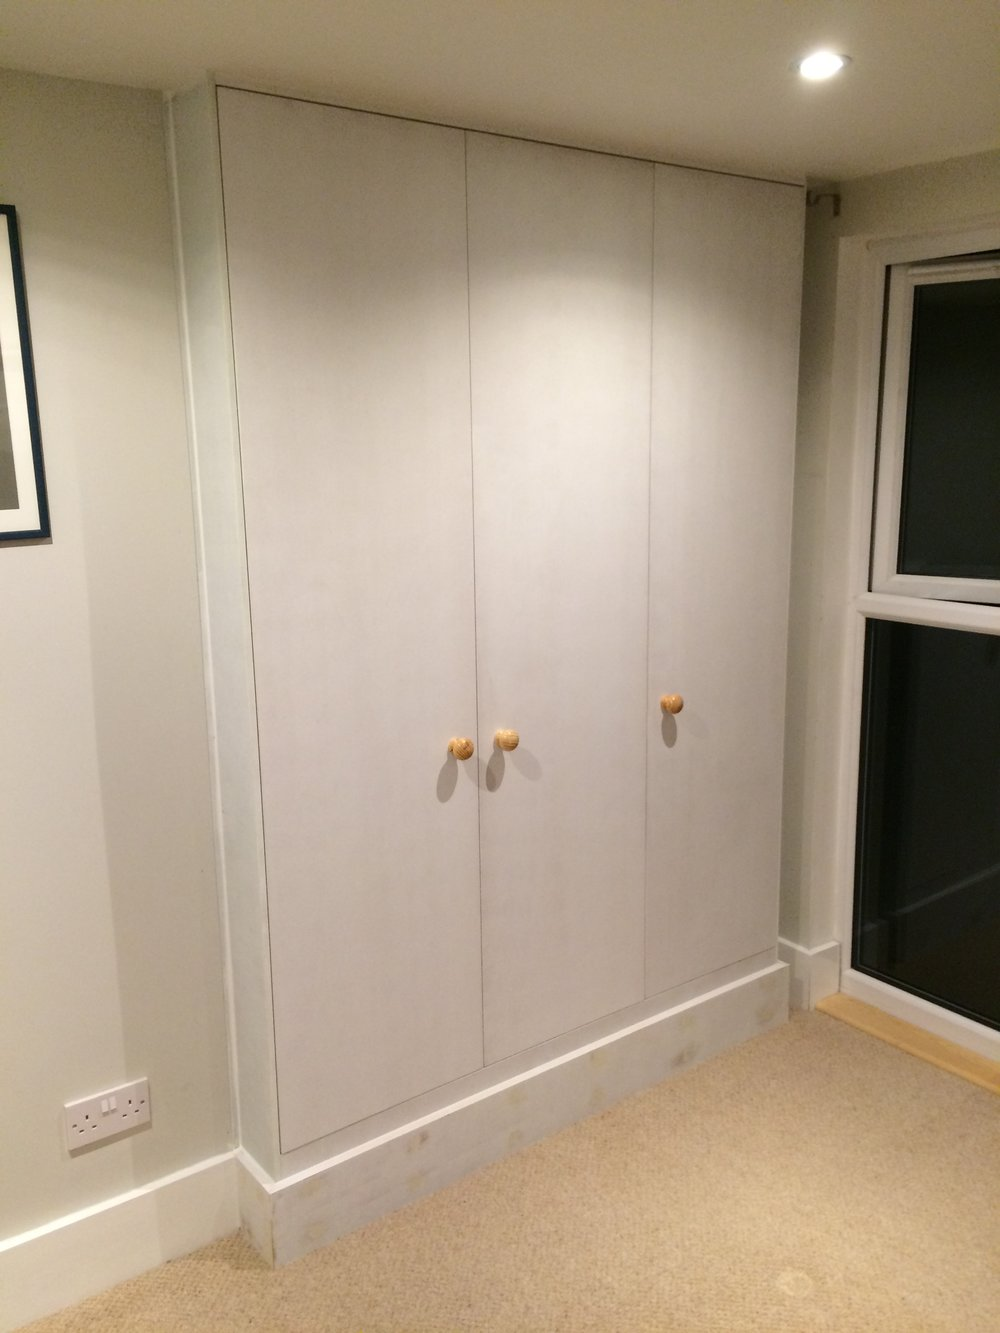 - These simple wardrobes were installed in to a fairly tight space within a loft conversion. Steel work beneath had to be hidden whilst also allowing a space for the curtains. The interiors are melamine faced, with the doors and trim being primed and ready for my client to decorate.